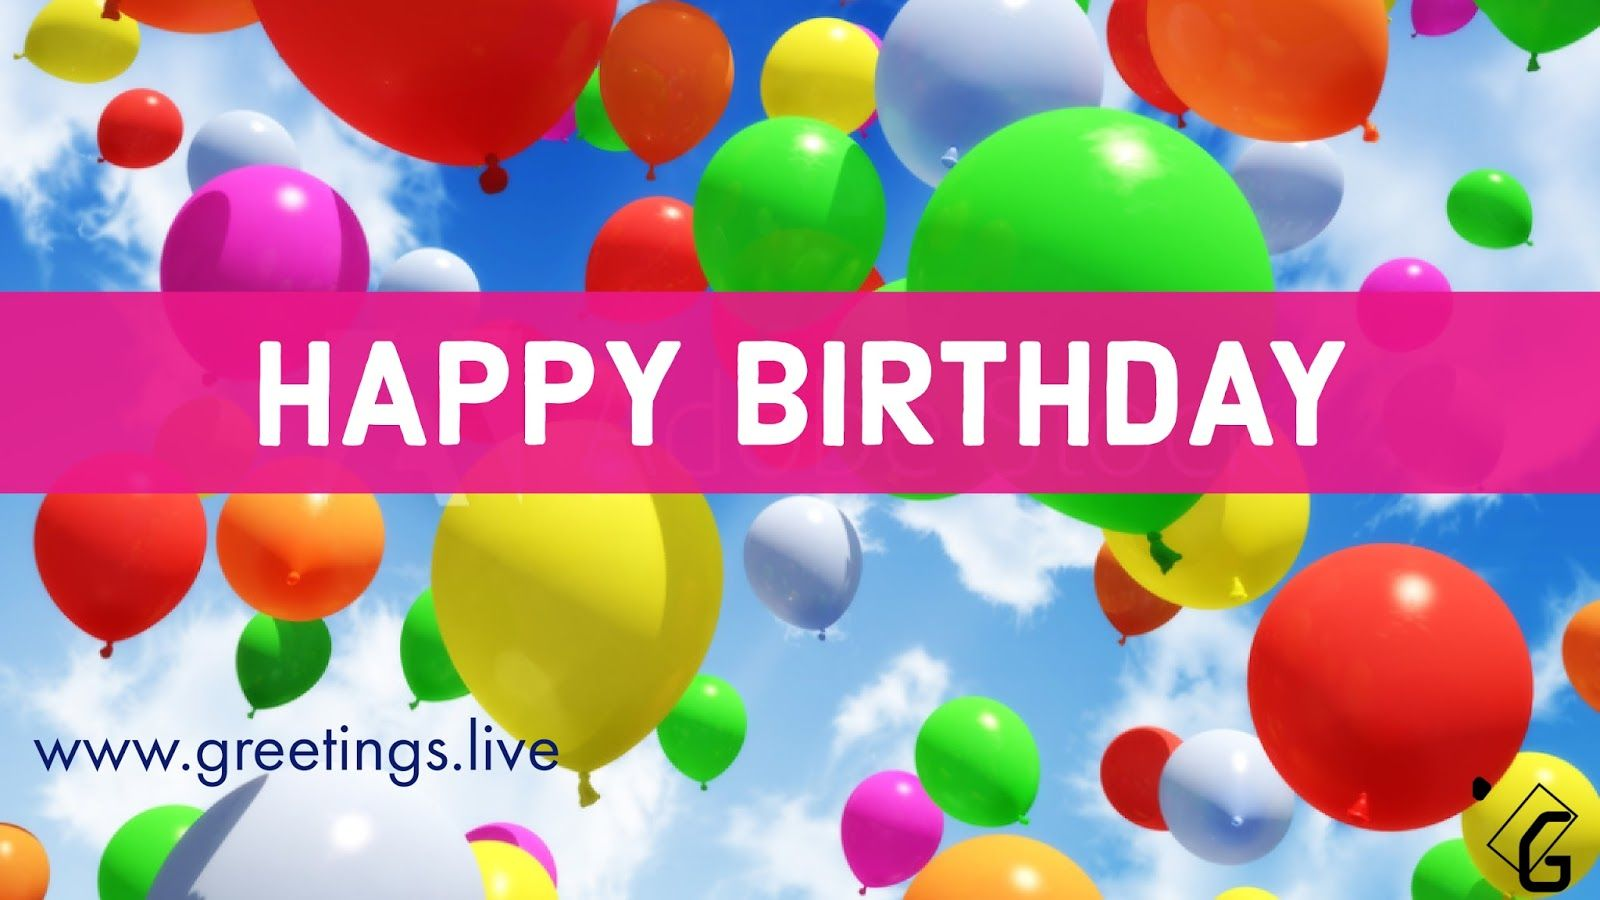 Happy Birthday Greetings With Colourful Balloons Birthday Wishes